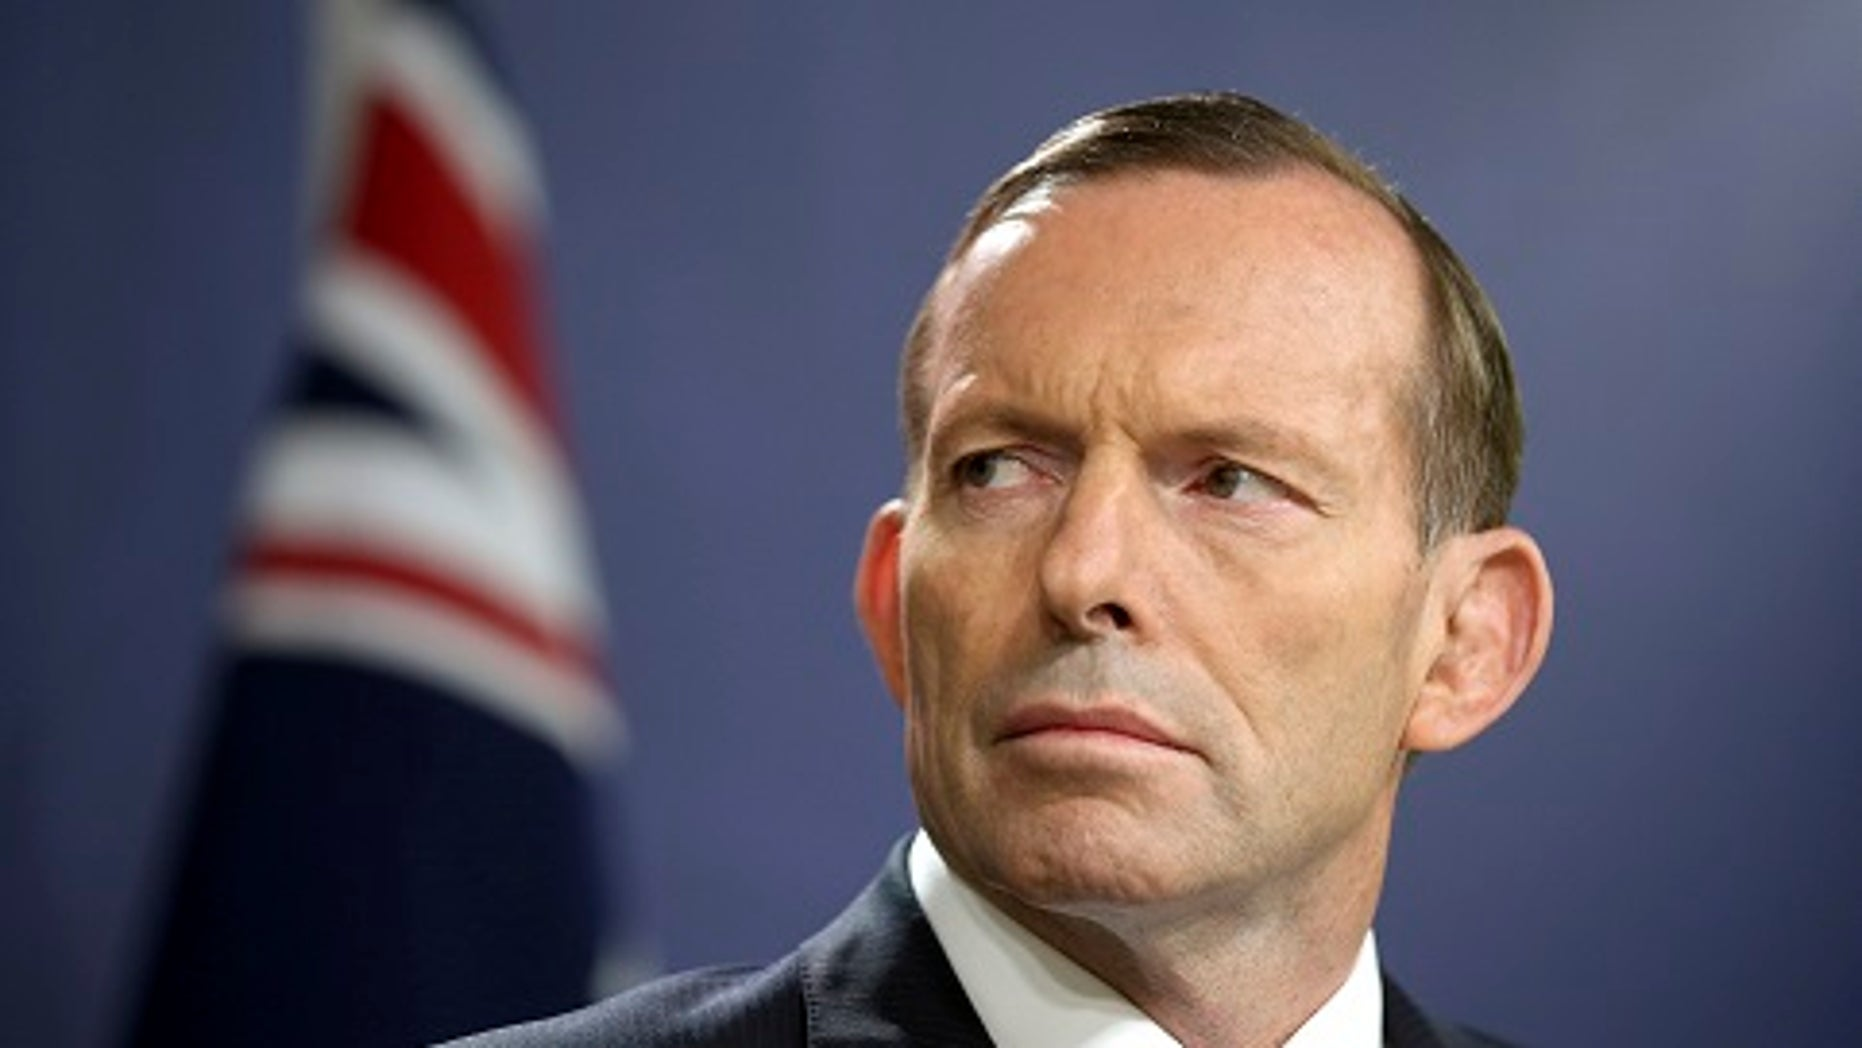 Former Australian Prime Minister Tony Abbott claimed he was head-butted by a gay rights activist Thursday, Sept. 21, 2017.